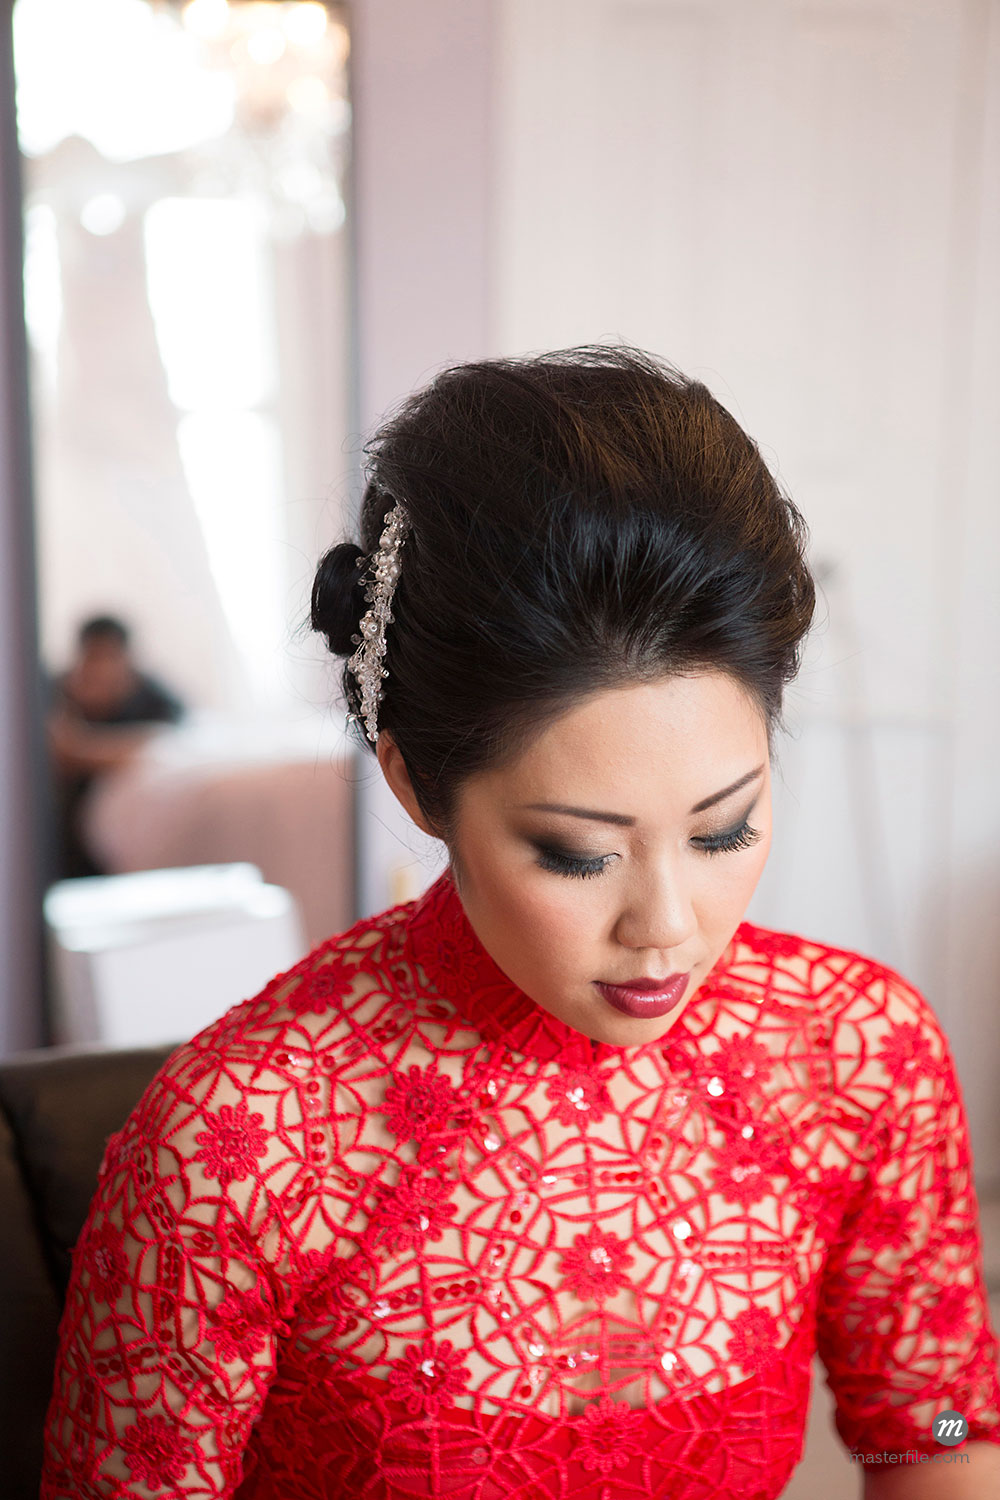 Portrait of Bride Getting Ready for Wedding  ©  Ikonica / Masterfile